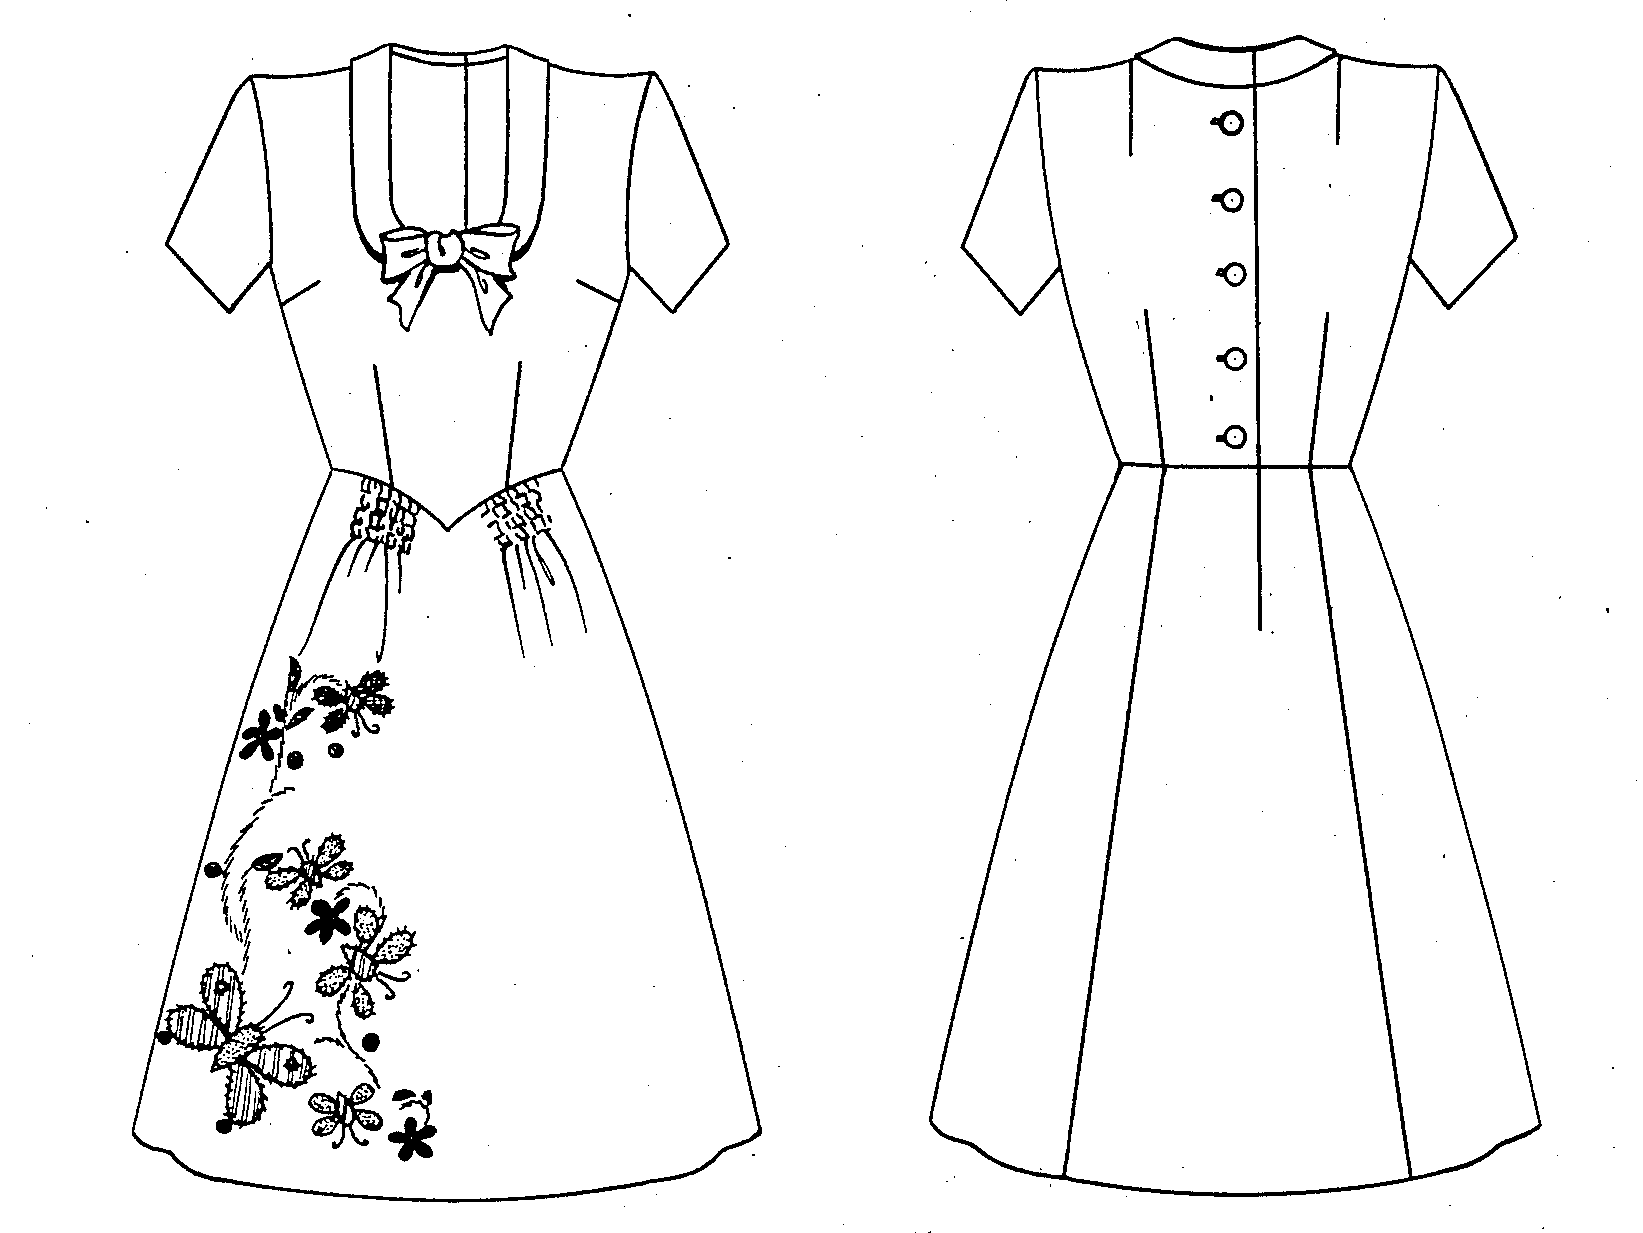 Dress design drawing images